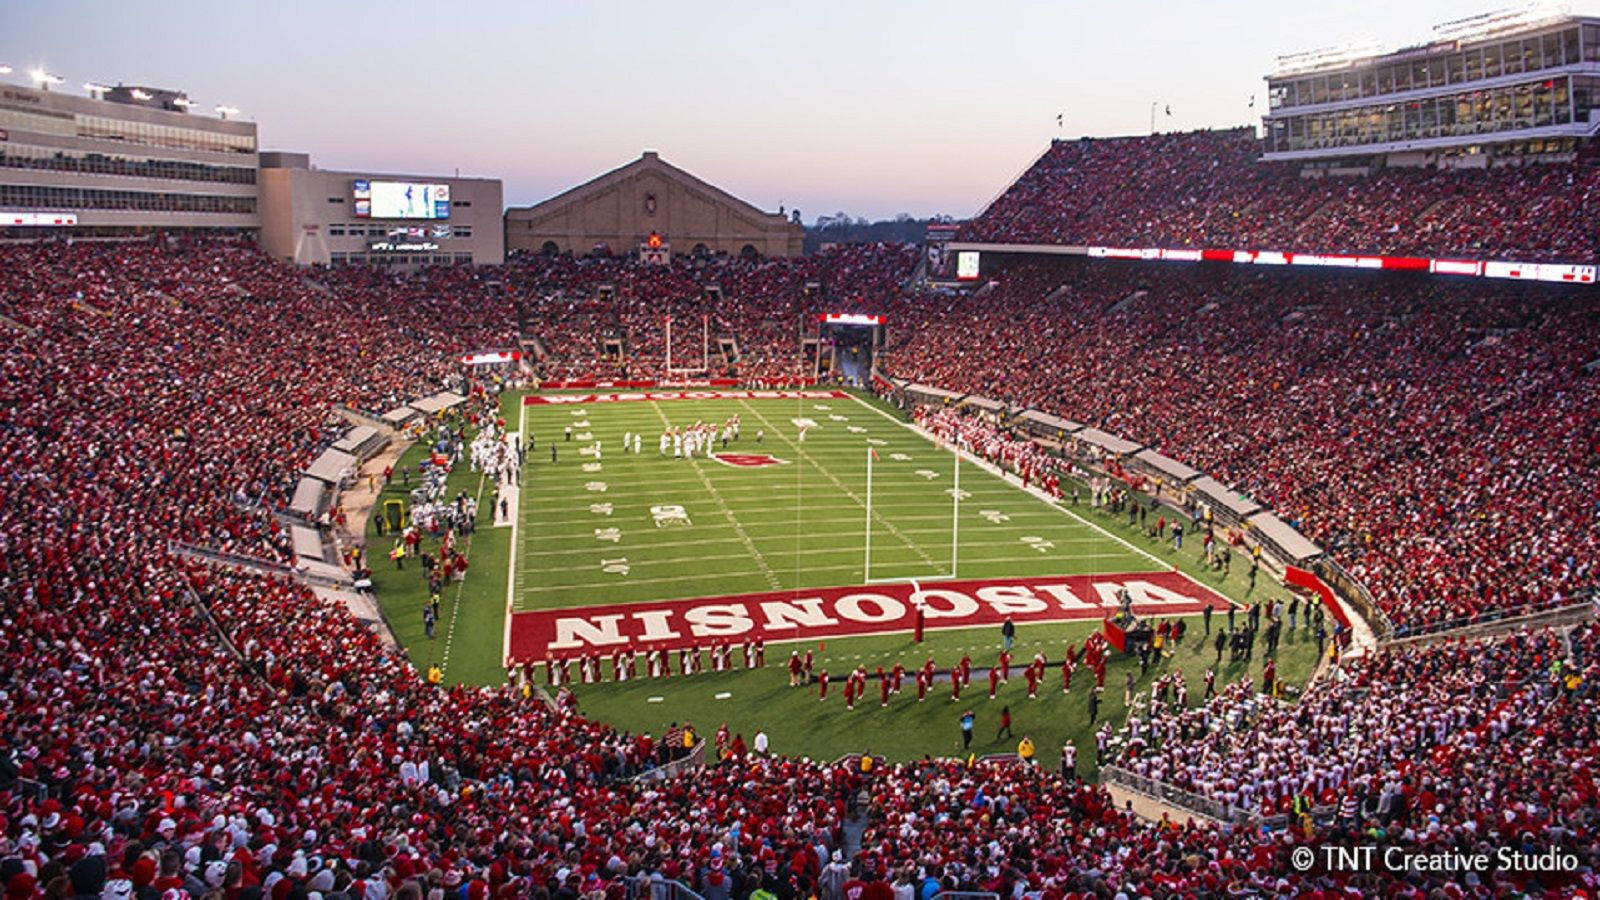 University of Wisconsin Stadium